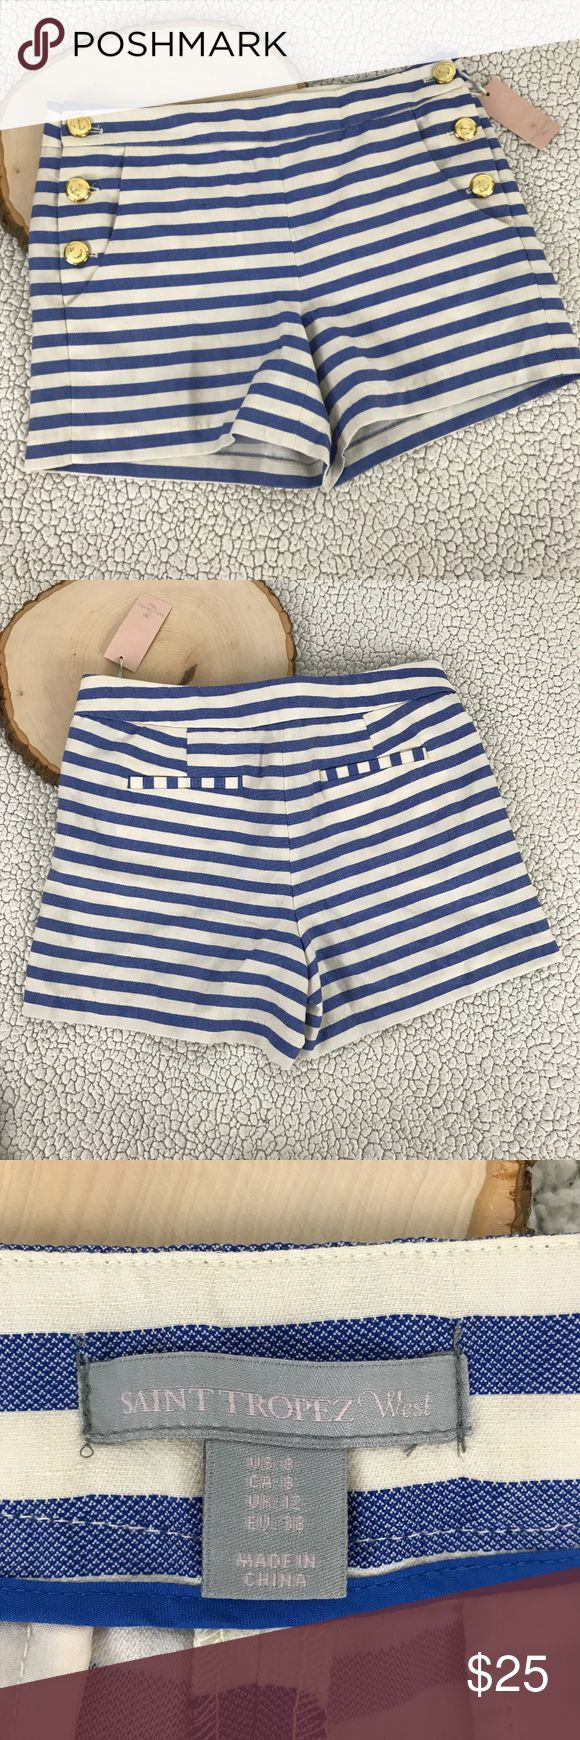 NEW NWT PIn Up Navy Nautical Shorts Blue White BRAND        :St Tropez West  SIZE     :Women's 8 STYLE     :Shorts COLOR     :White - Blue MATERIAL     :80% Polyester 15% Cotton 5% Linen  MEASUREMENTS :Waist 17 Inseam 4 Condition    :NEW NWT  Inventory    :R71 Saint Tropez West Shorts